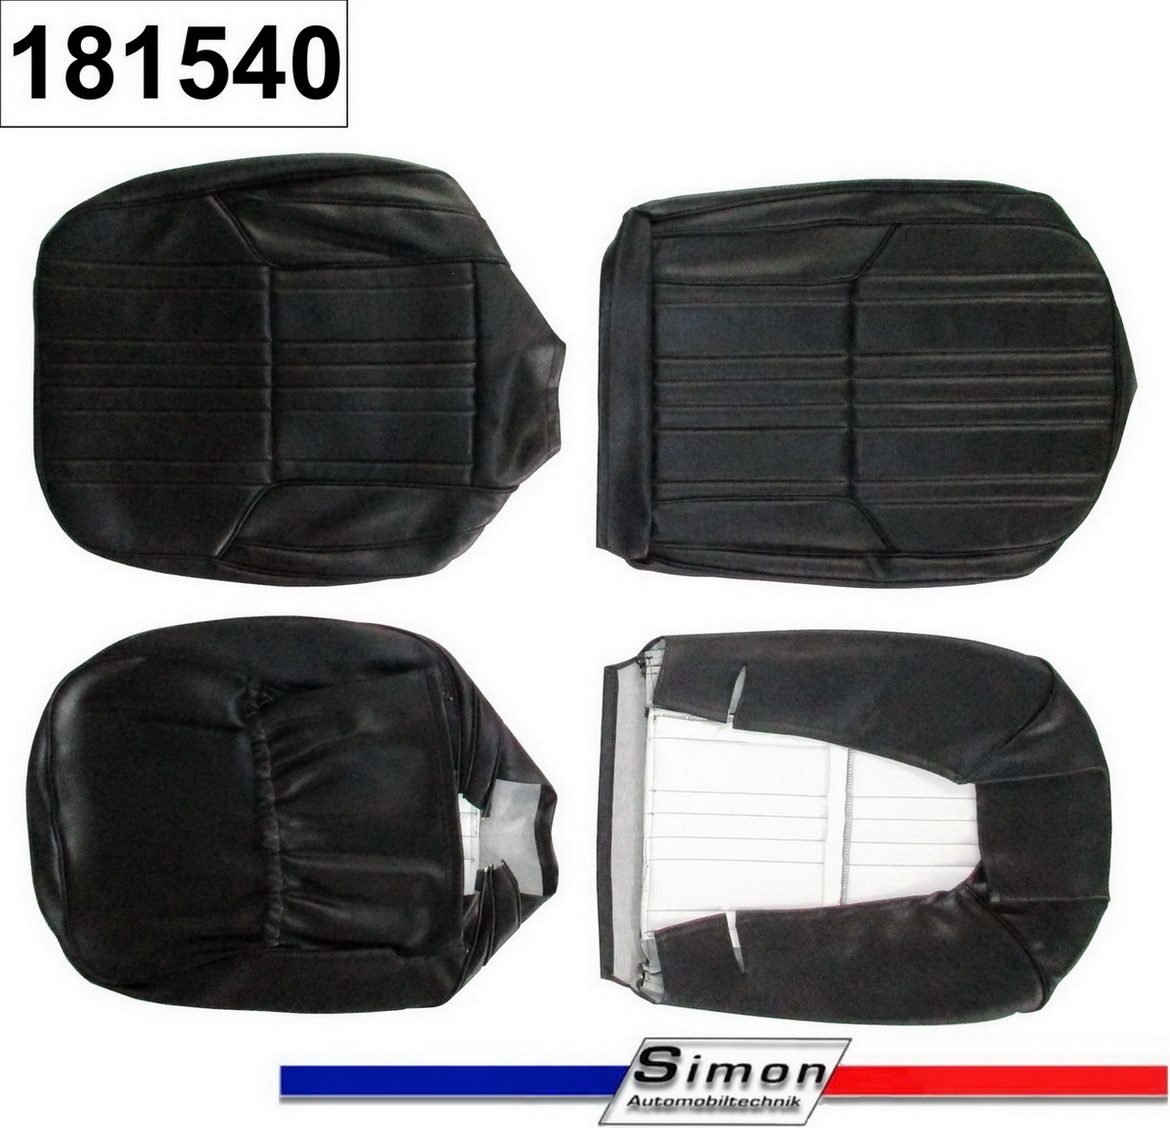 Seat covers (4 pieces) Alpine A110